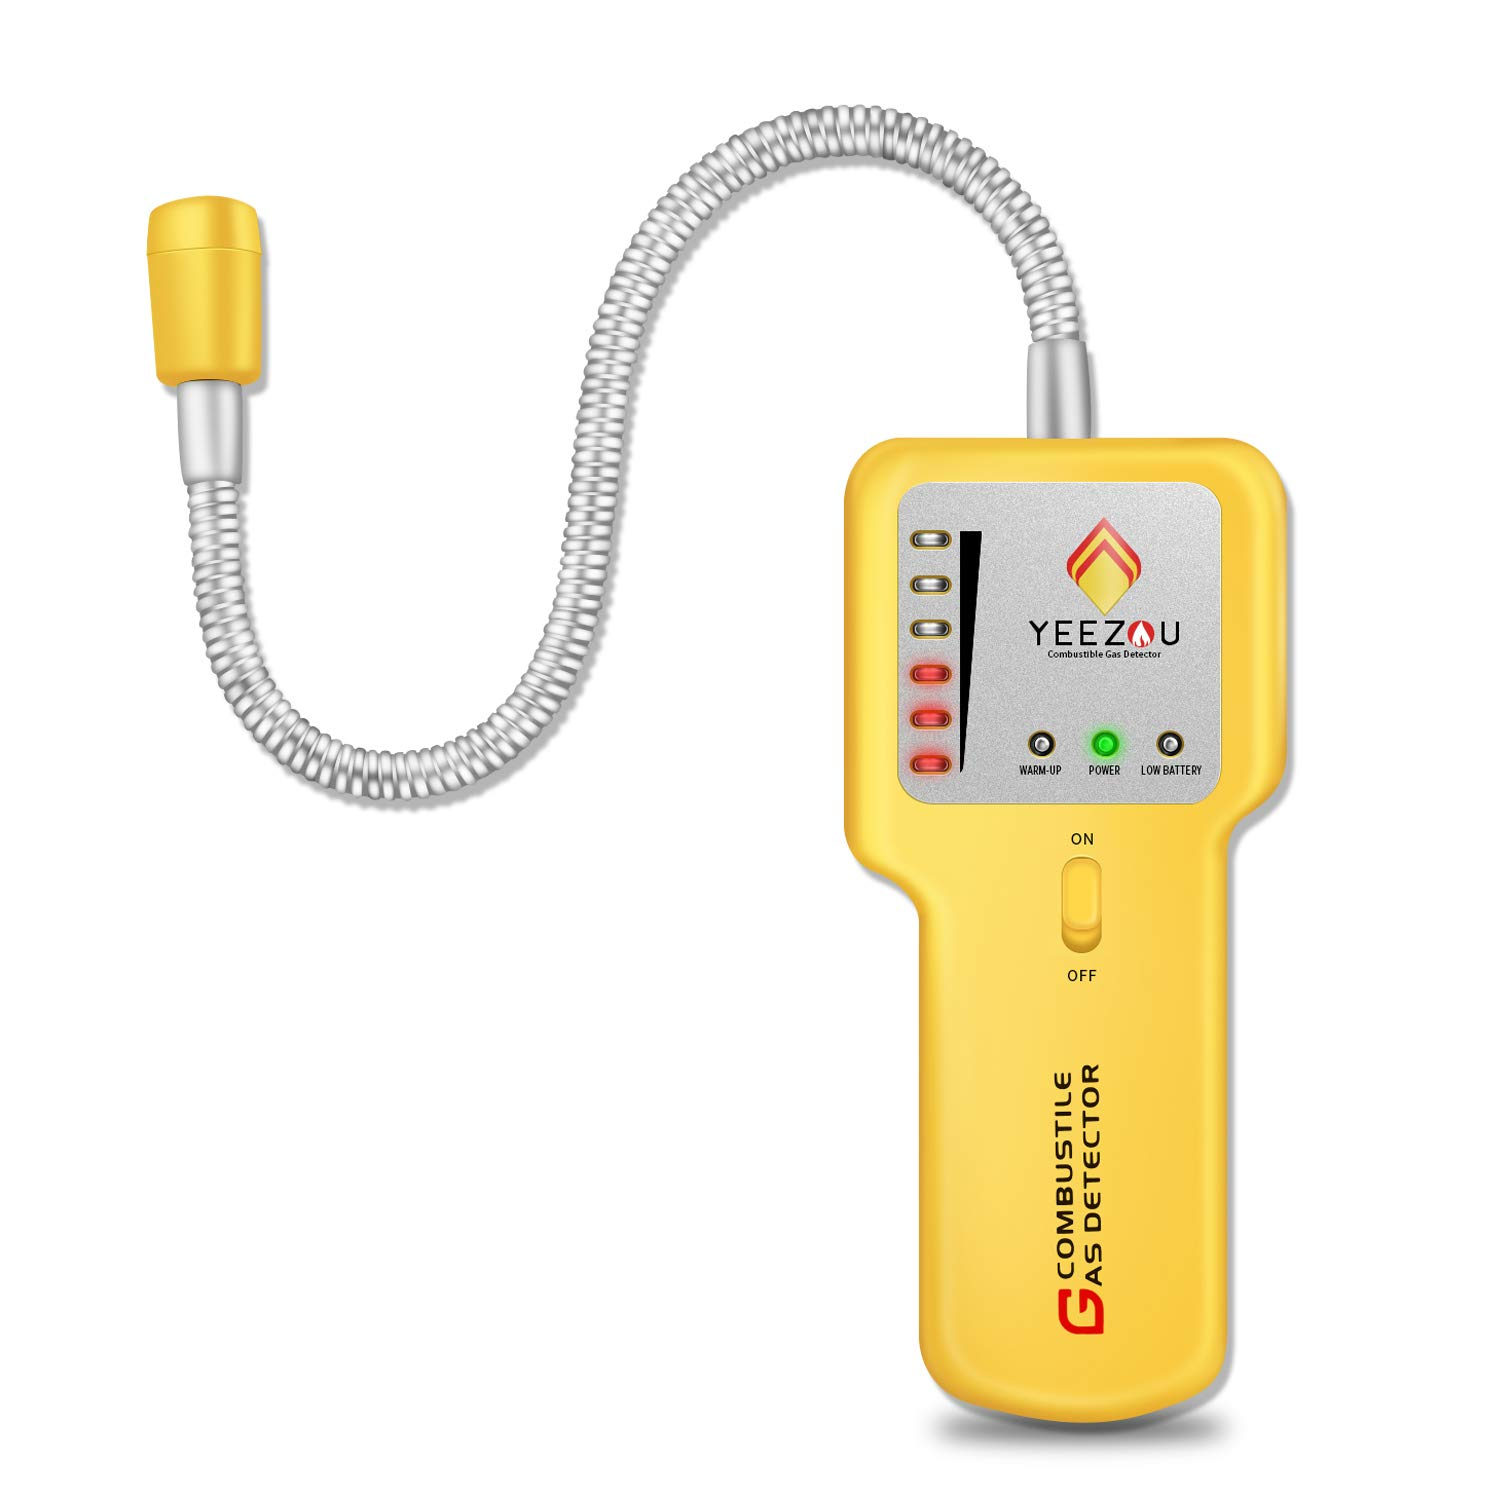 Combustible Gas Leak Detector, Natural Gas Detector,Propane Gas Leak Detector,Portable Gas Leak Sniffer Detector,Gas Monitor Detector,CE Certified,Sound & LED Warning, Flexible Sensor Neck by Mofail